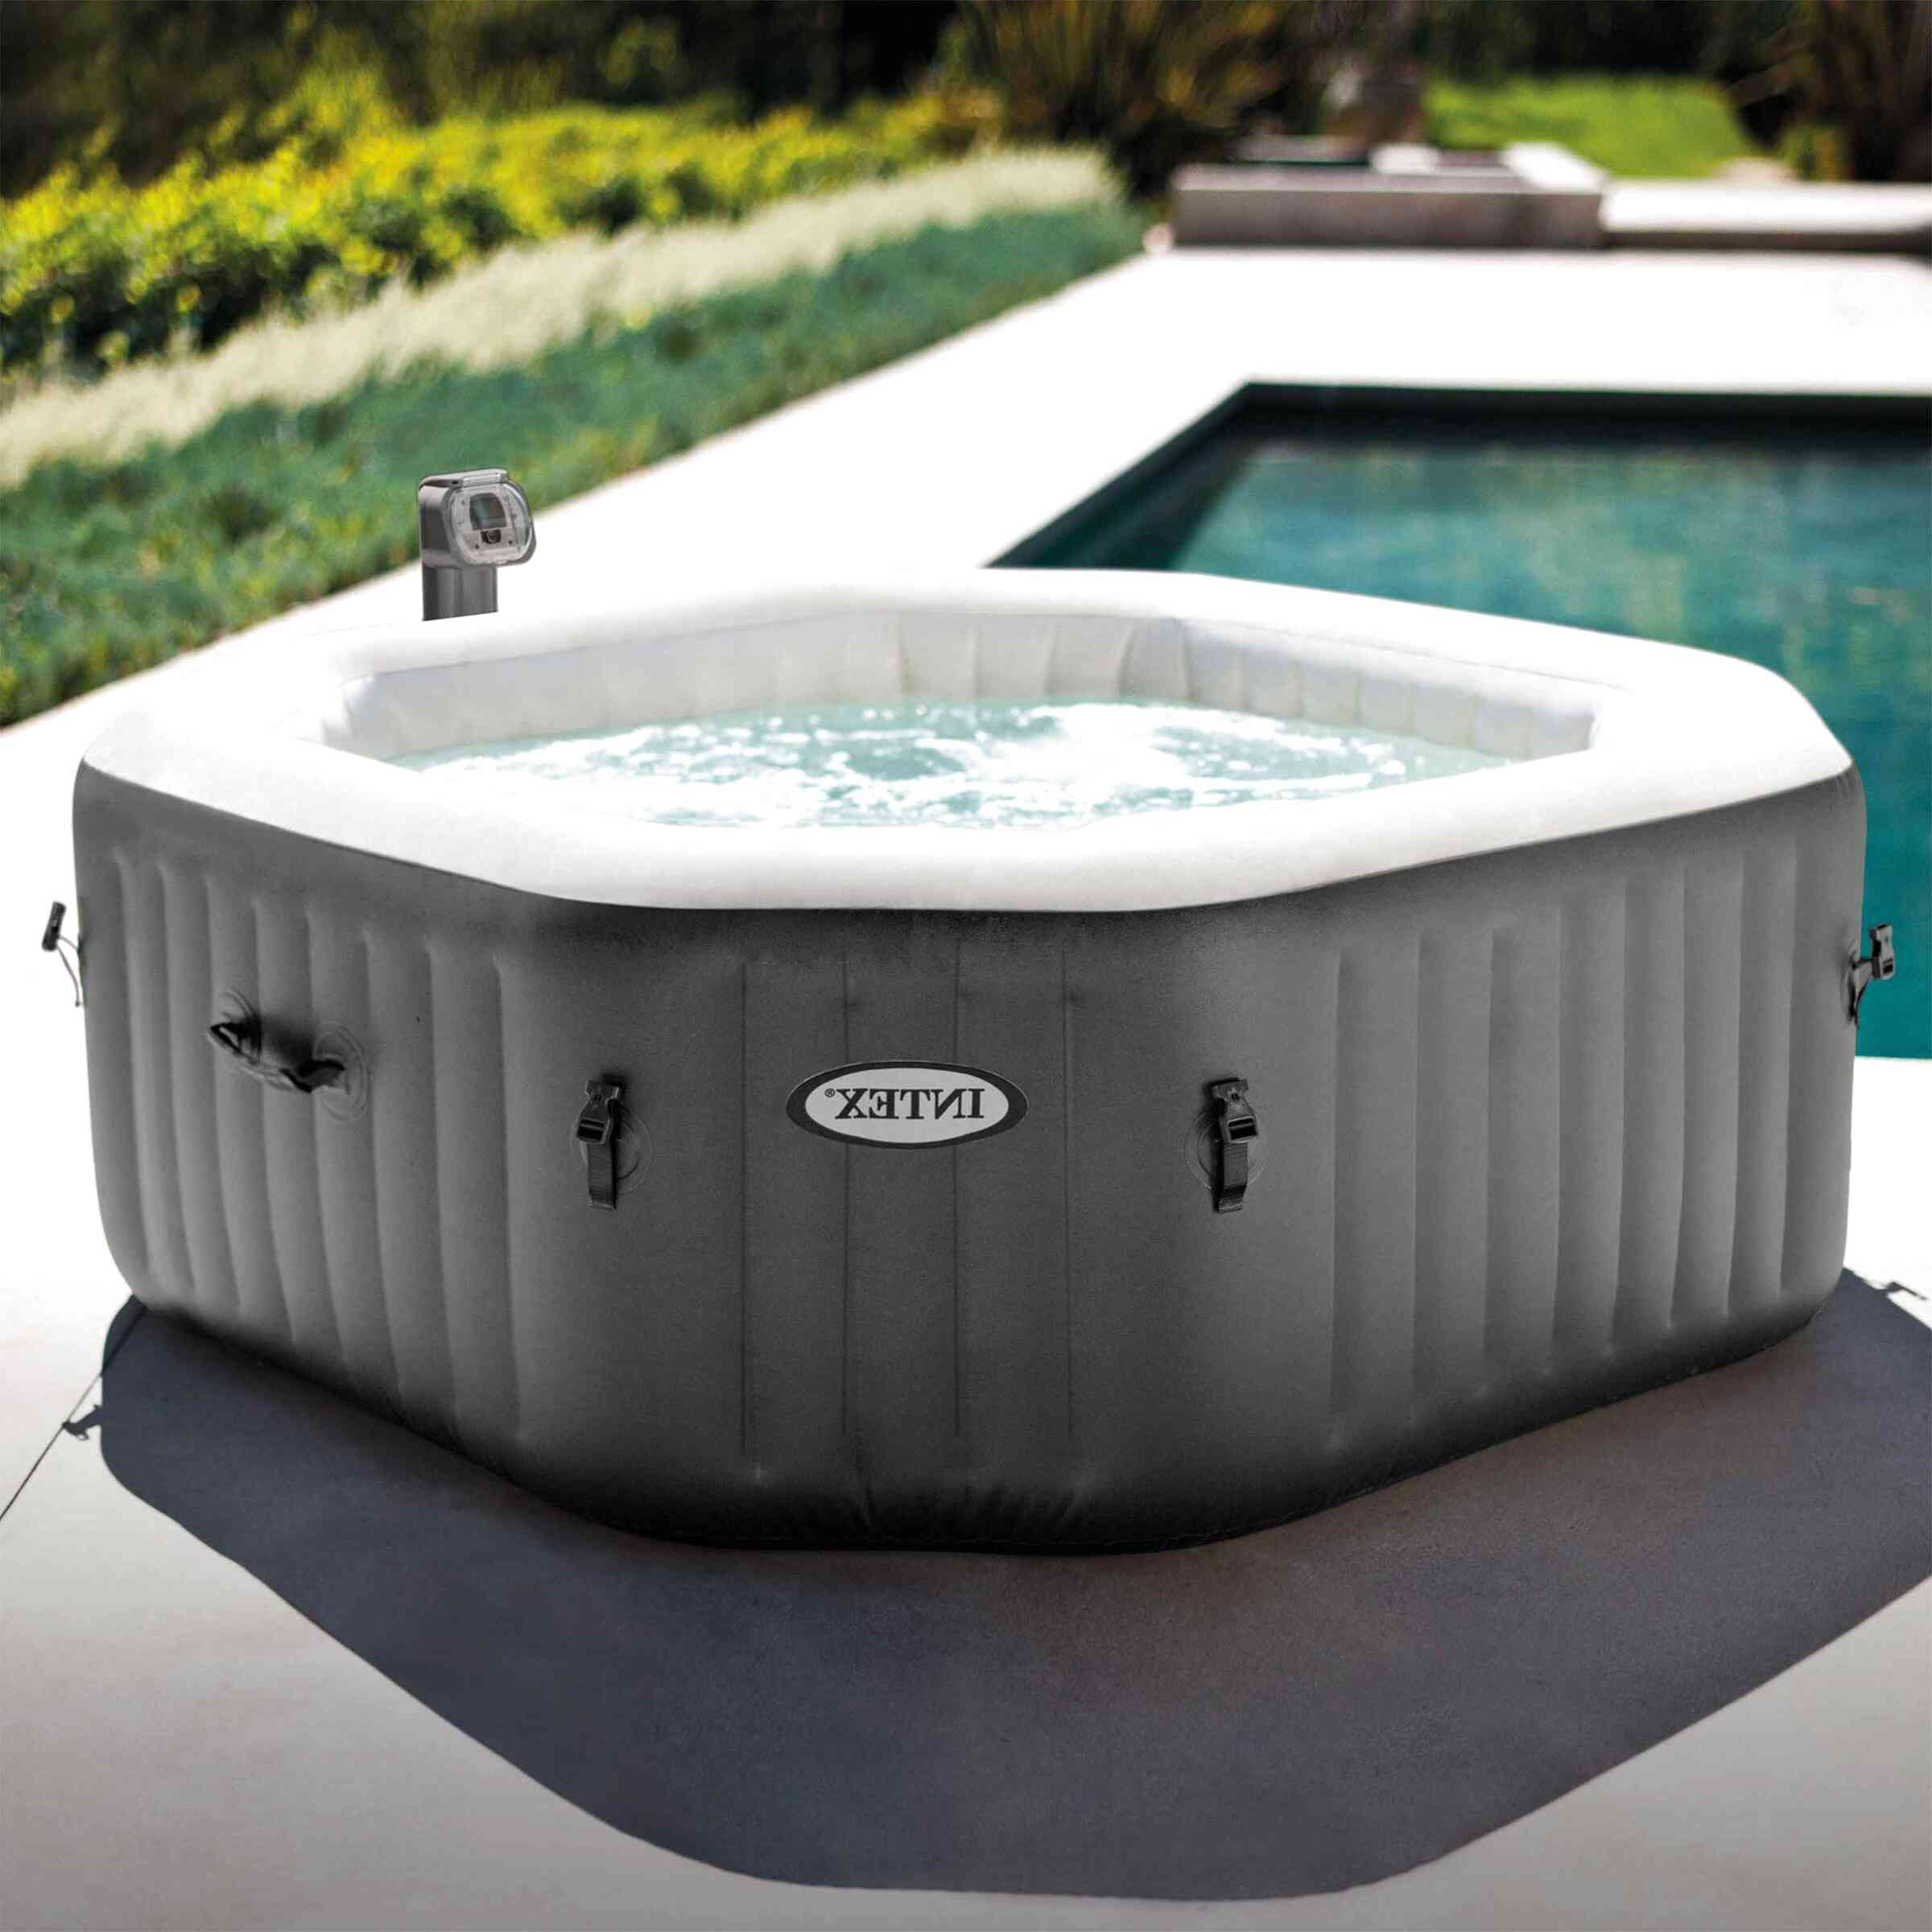 Portable Hot Tub for sale | Only 2 left at -60%